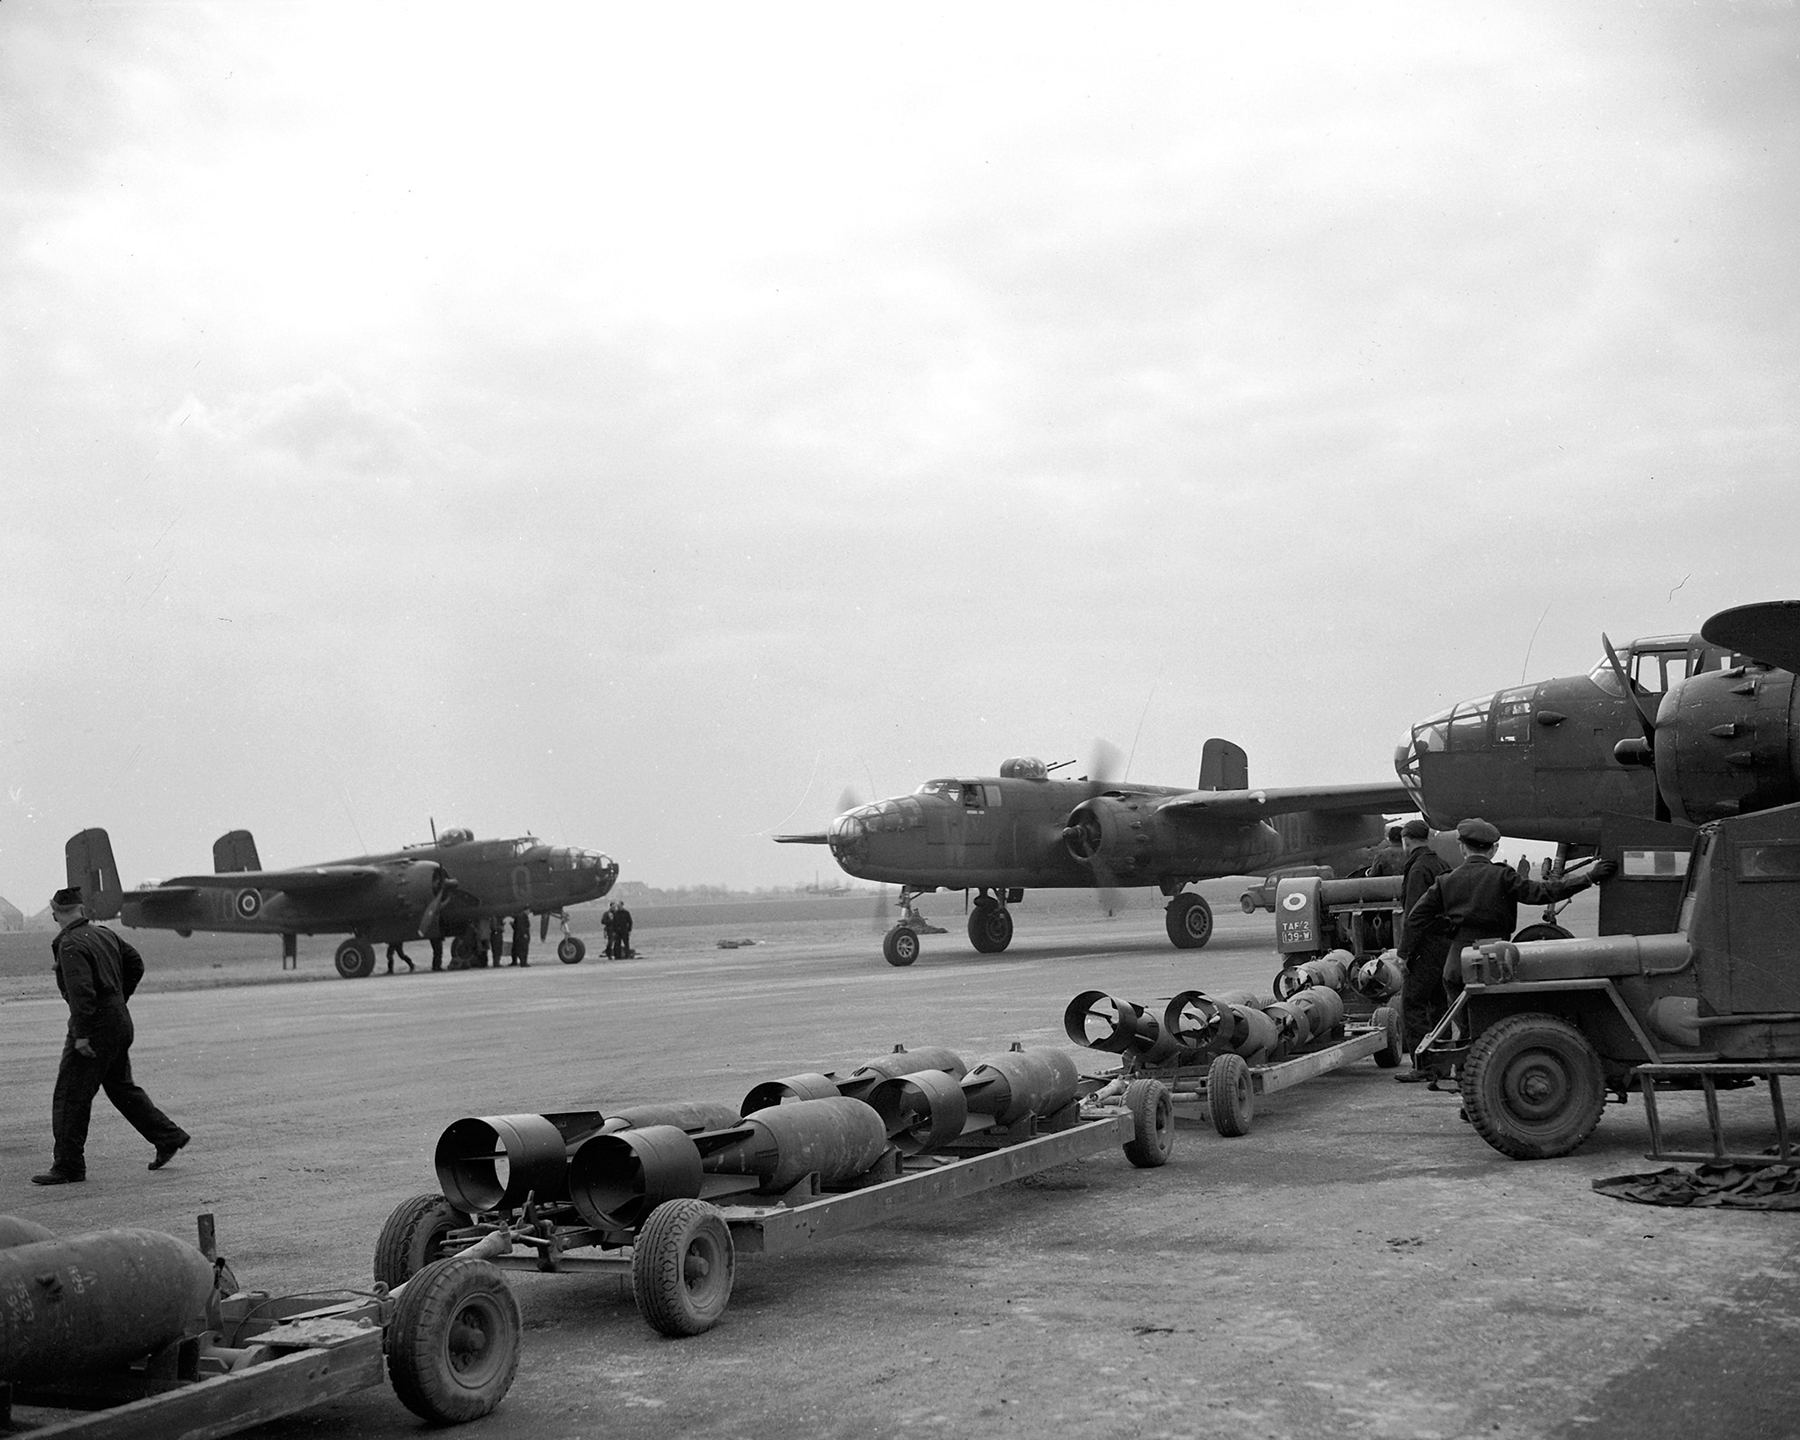 At an undisclosed airfield in England, tractors and trailers loaded with high-explosive bombs await incoming Mitchell light bombers crewed by Royal Canadian Air Force members on February 14, 1945. PHOTO: DND, PL-42718